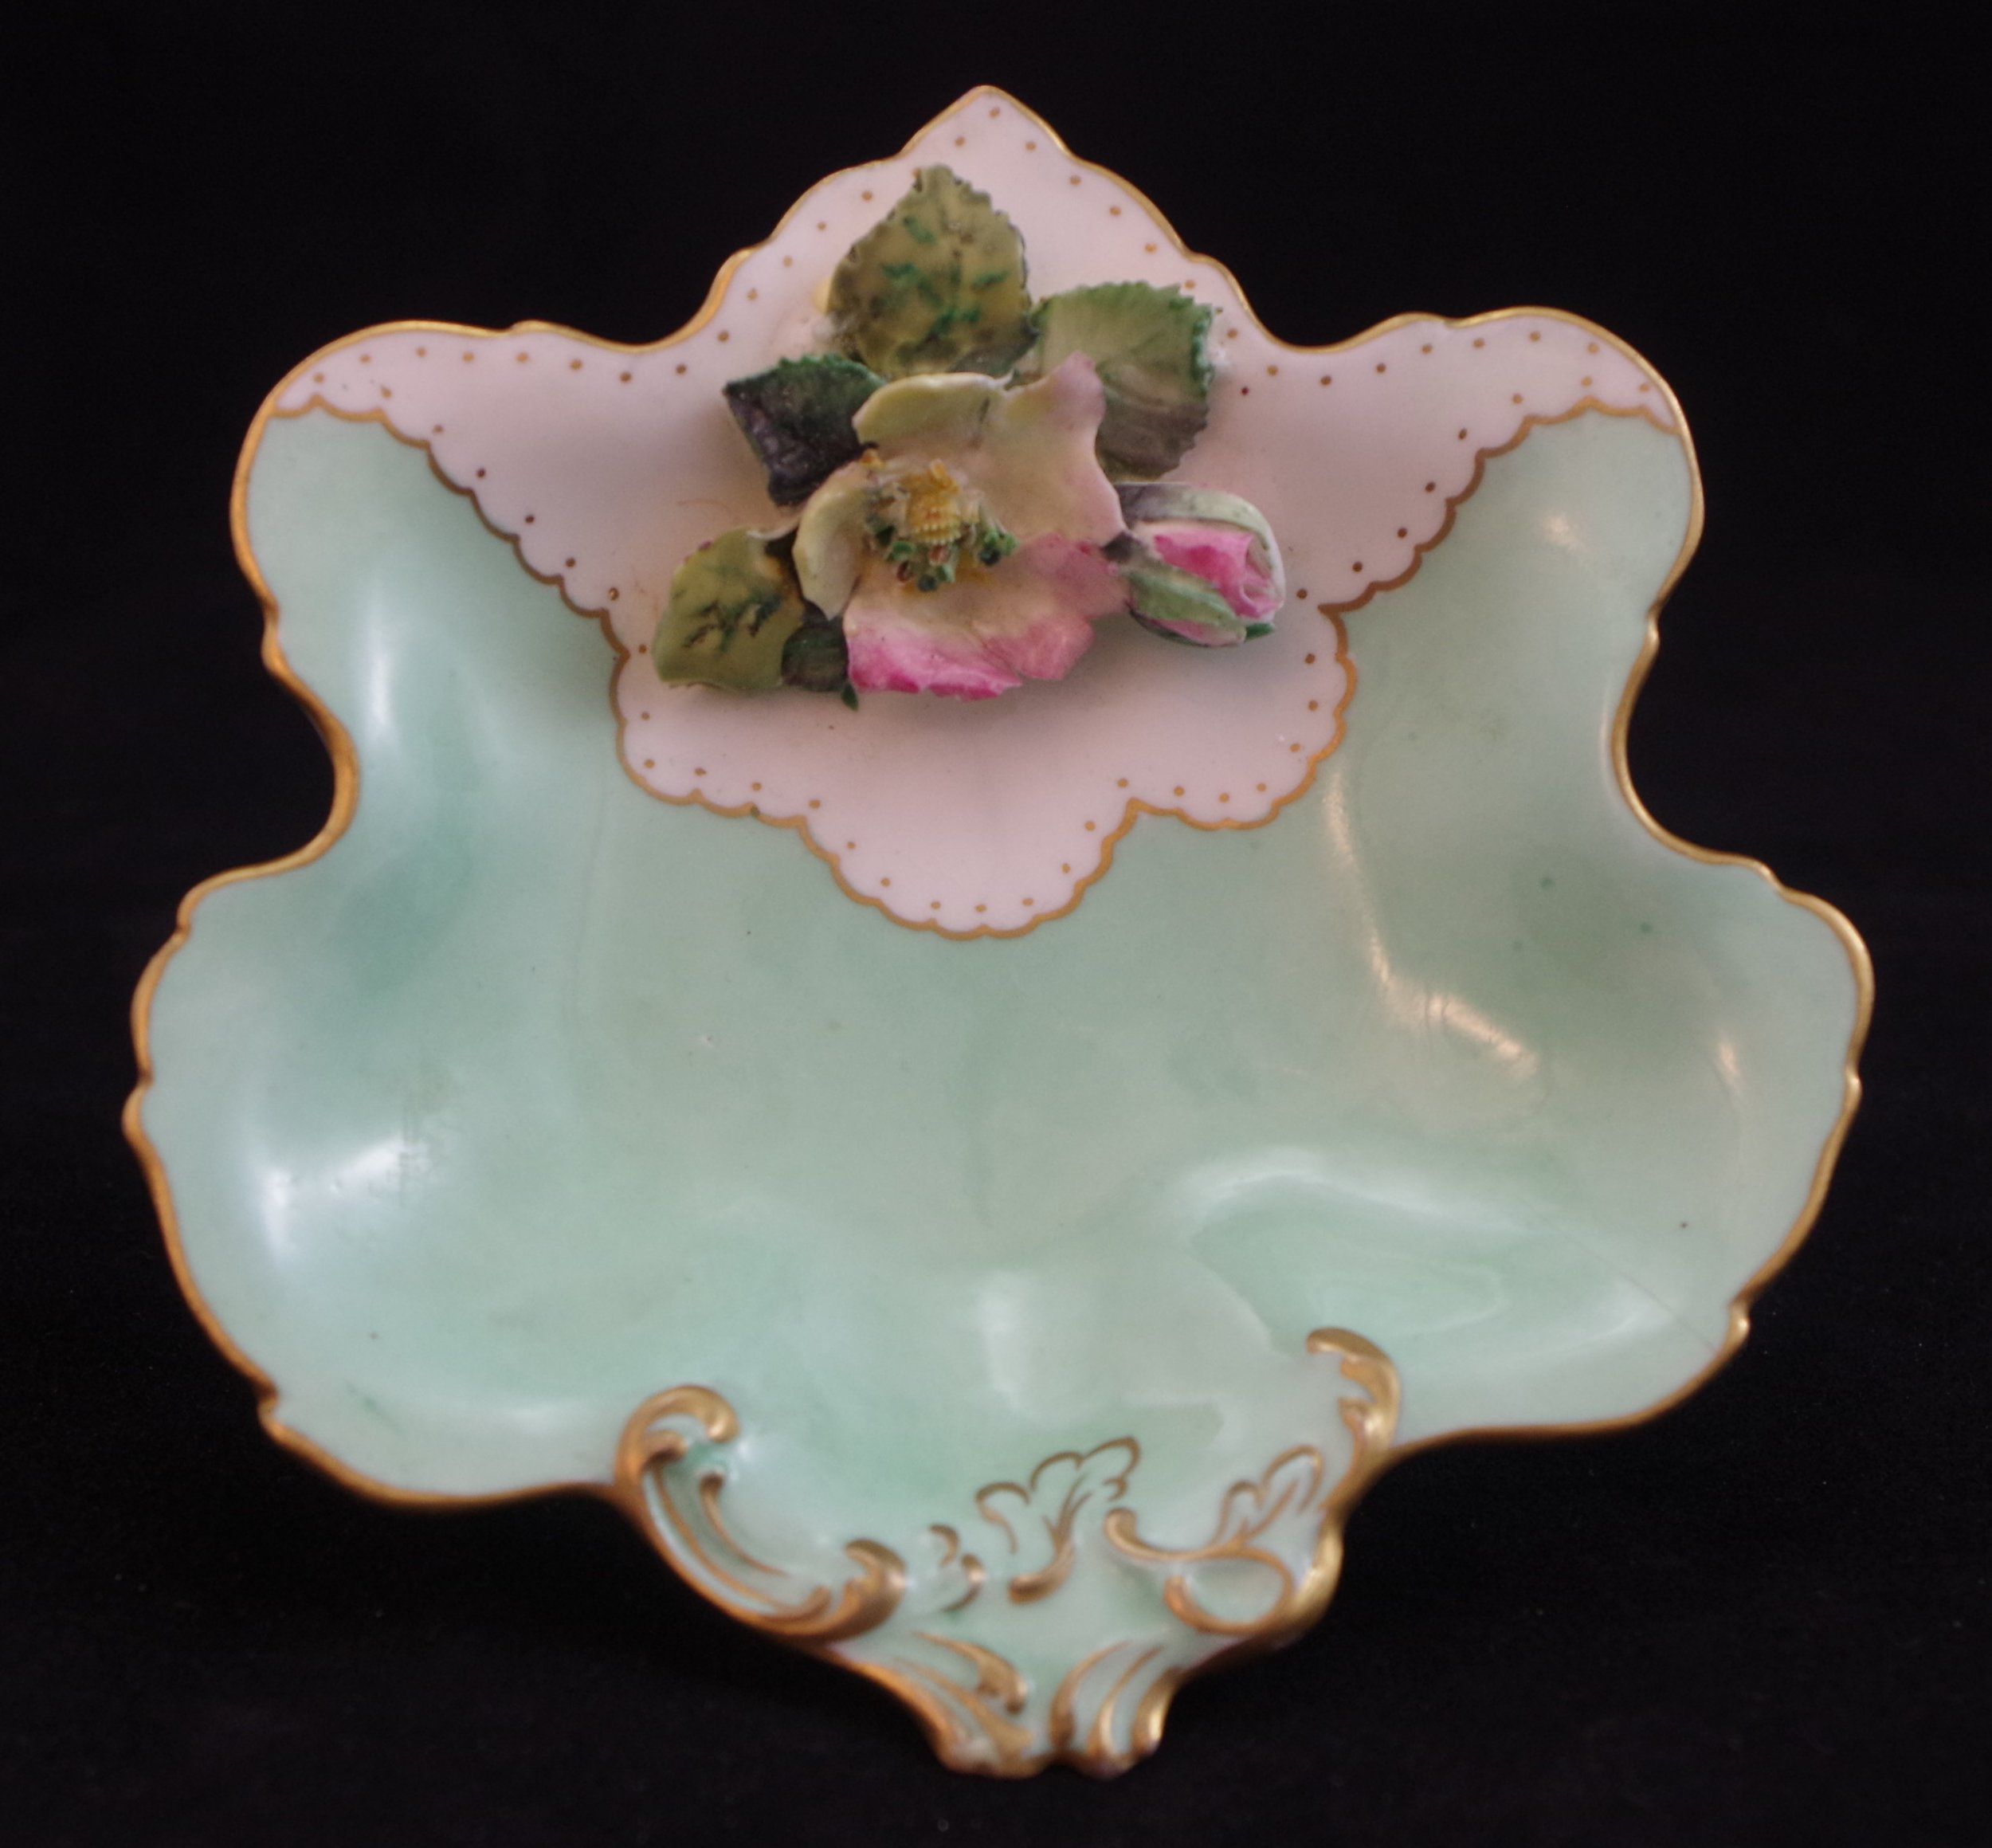 royal-crown-derby-celadon-flowered-rockingham-bon-bon